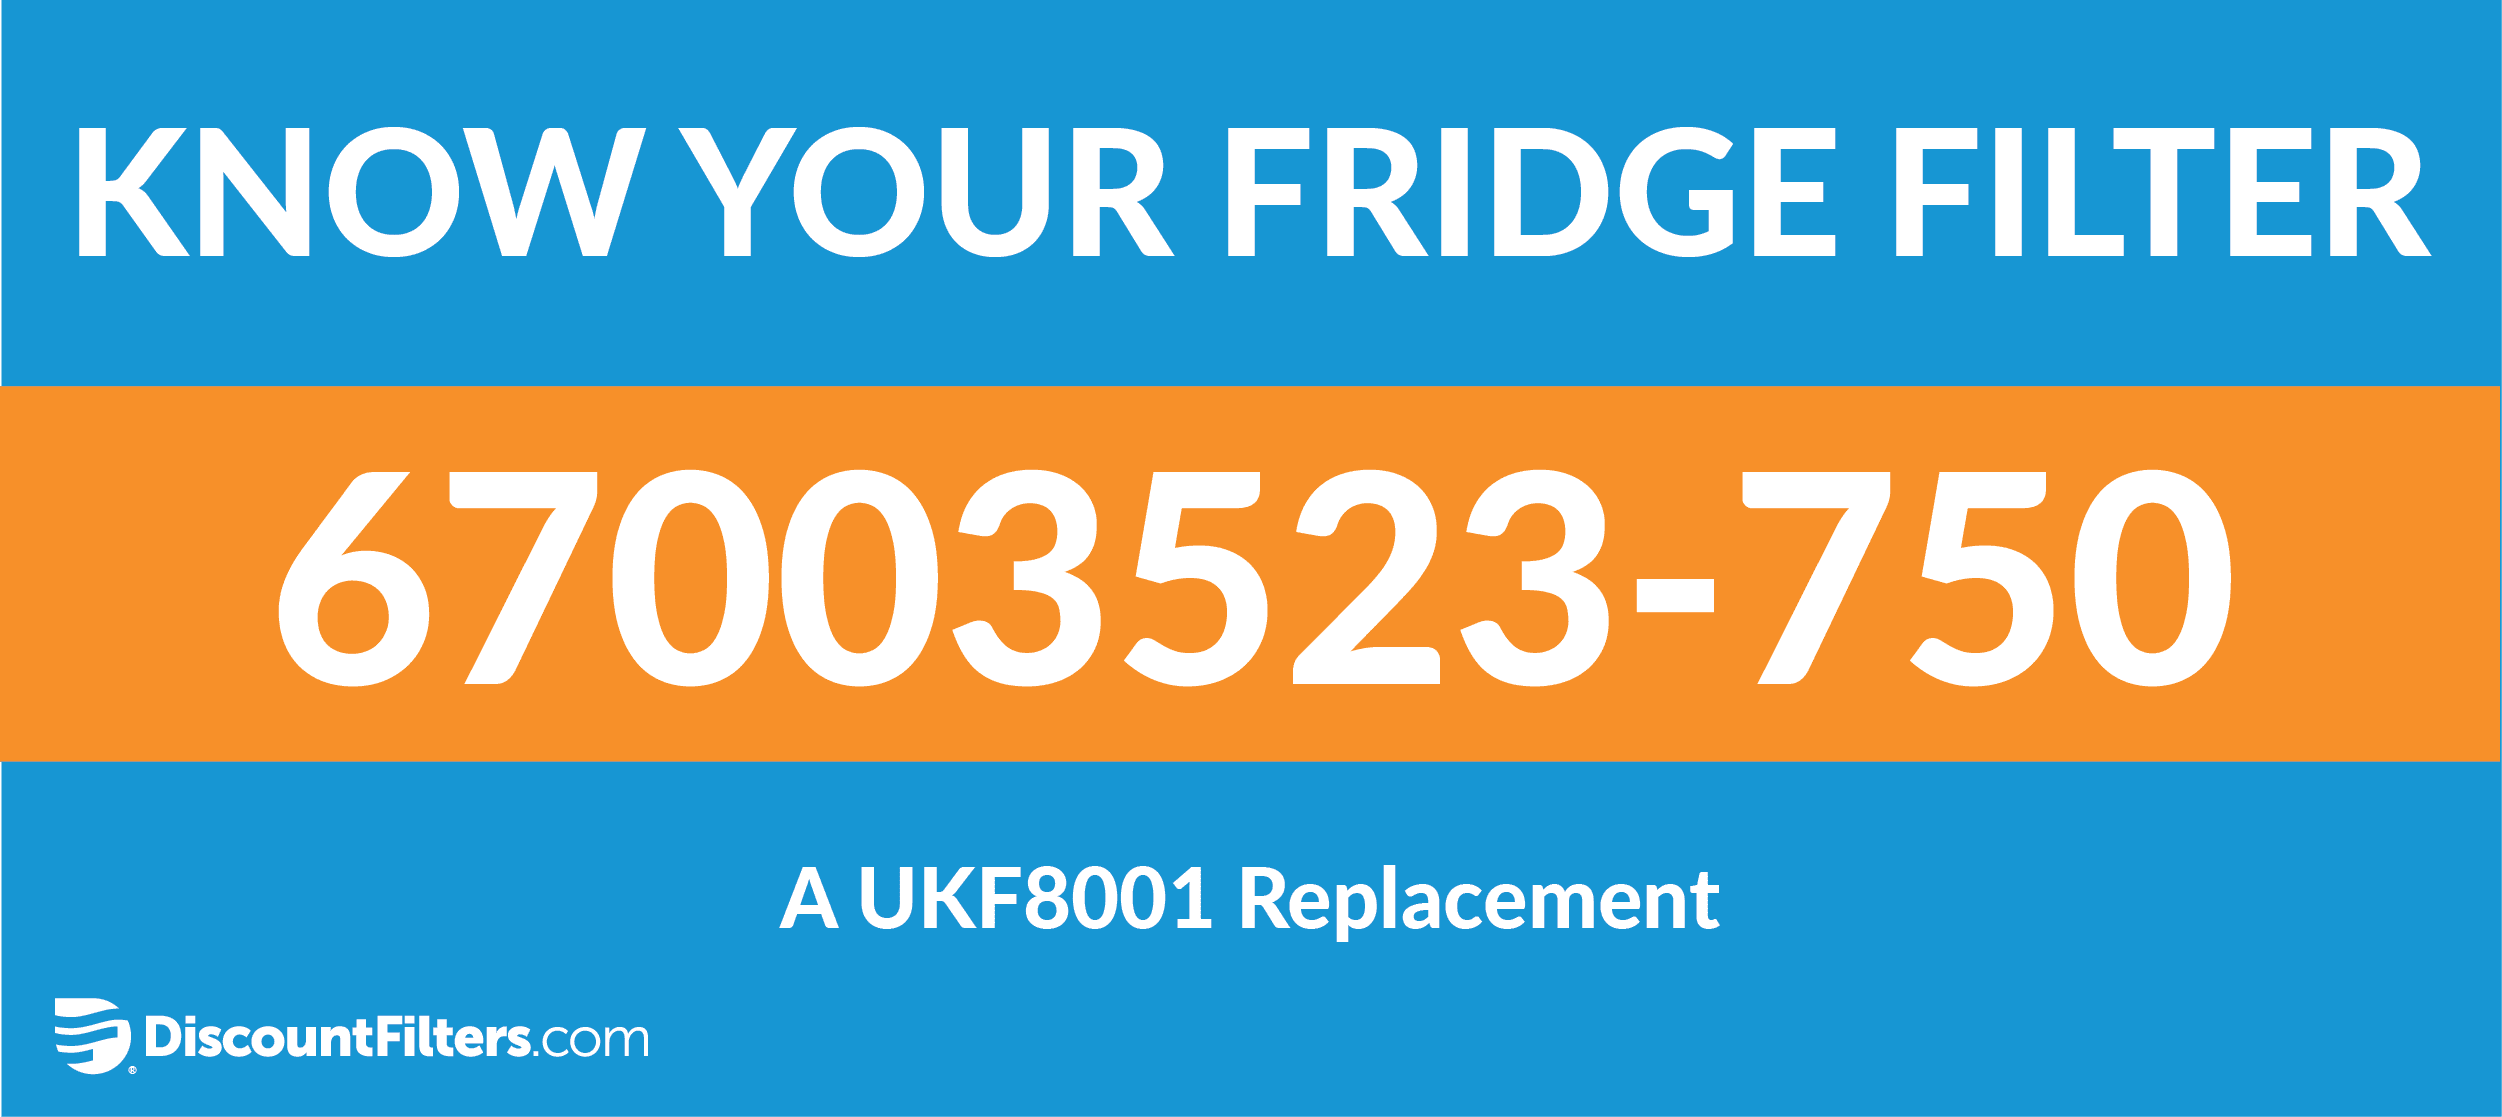 know your fridge filter 67003523-750 ukf8001 replacement